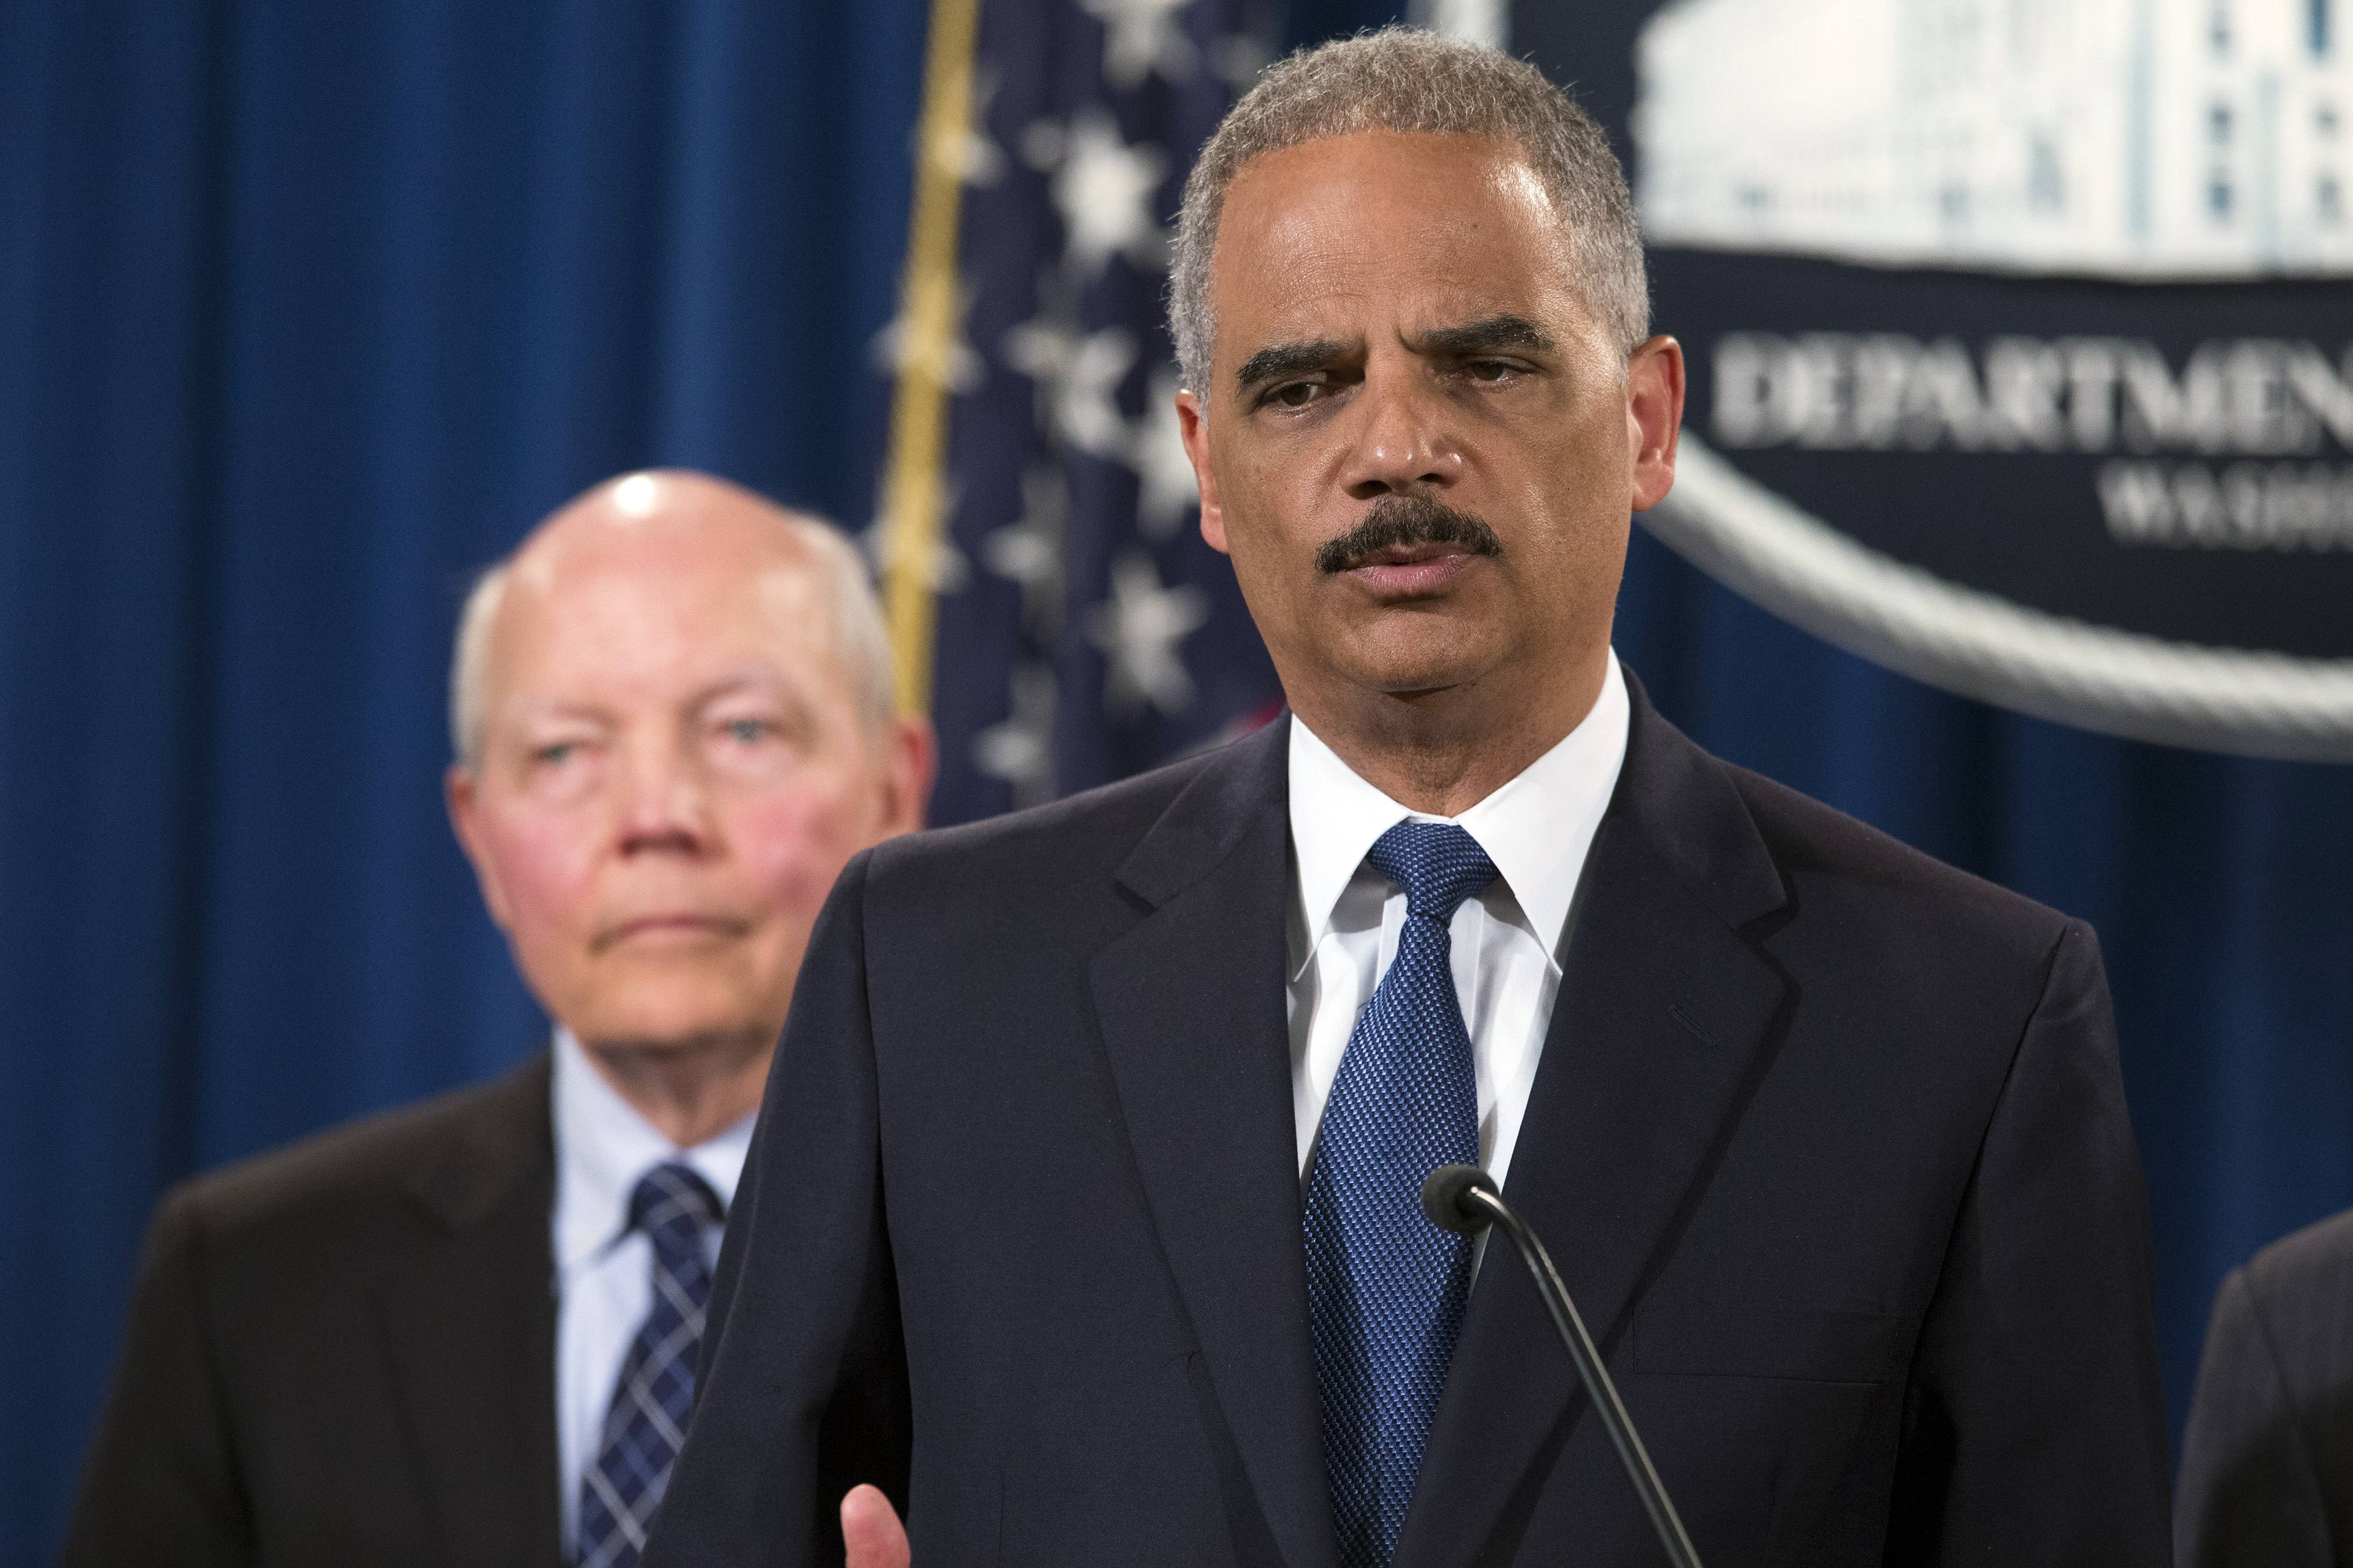 Attorney General Eric Holder, right, with IRS Commissioner John Koskinen listening, outlines Monday how the Justice Department charged Credit Suisse AG with helping wealthy Americans avoid paying taxes through offshore accounts.